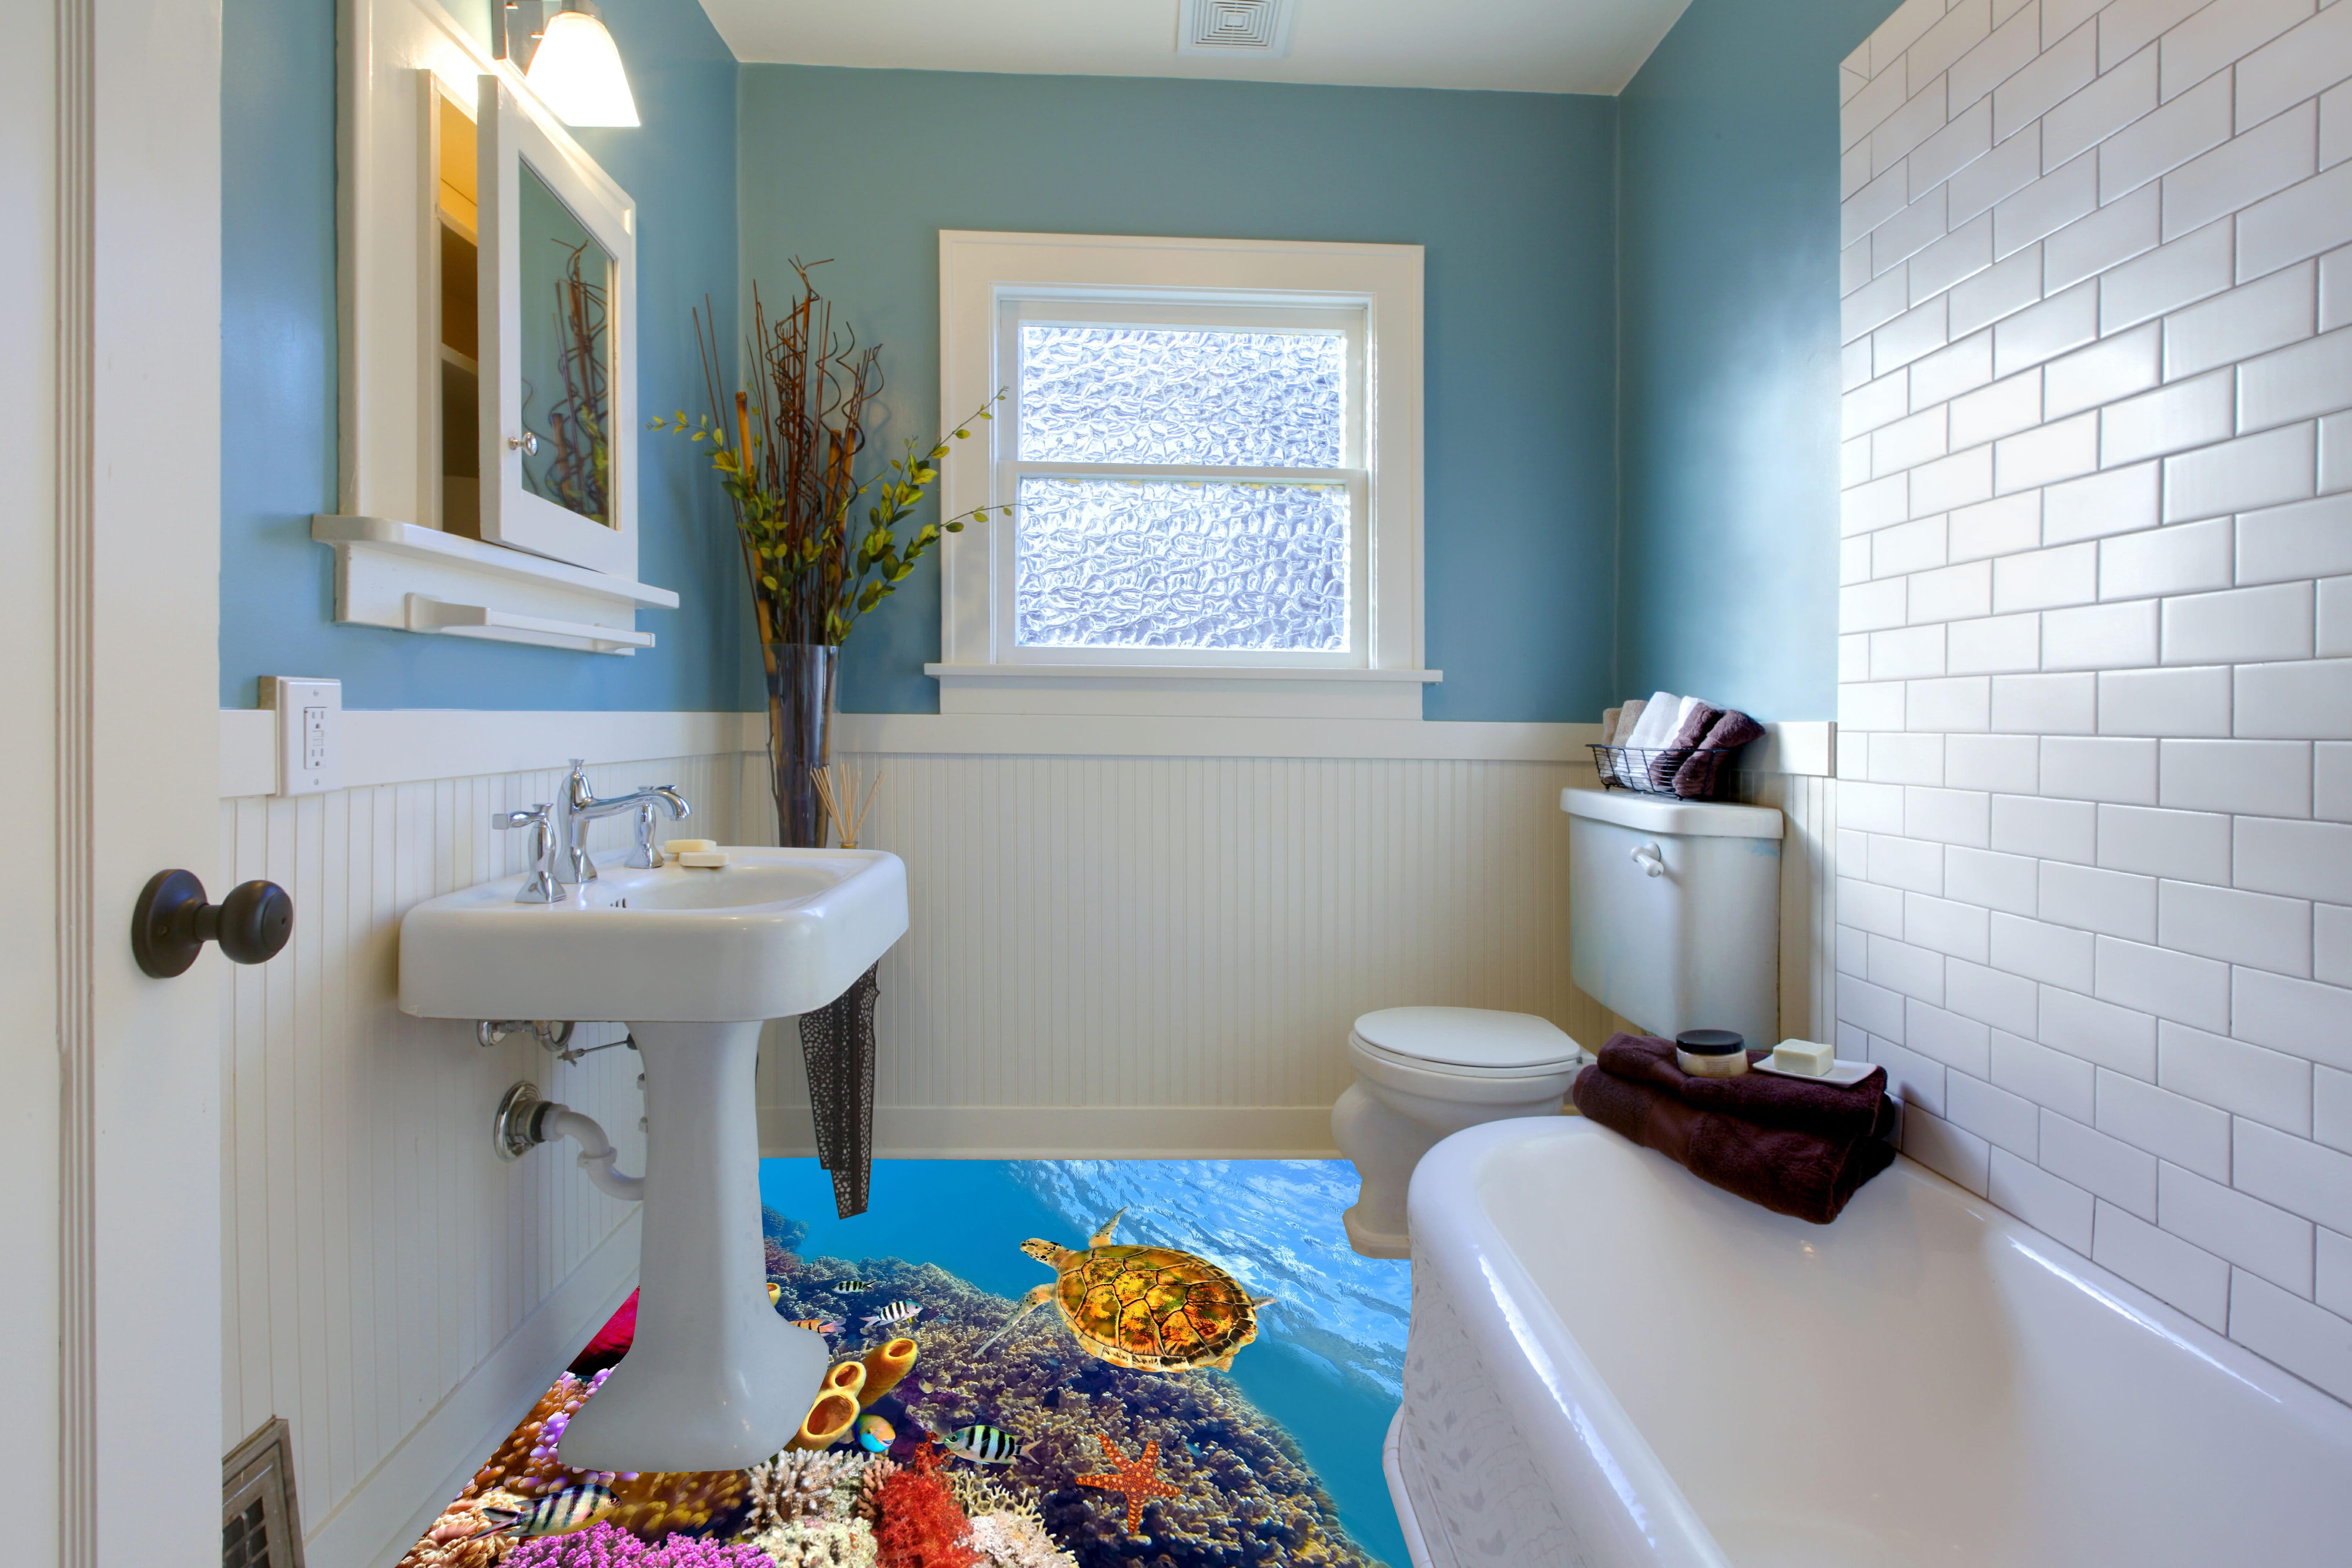 3d epoxy flooring for bathroom coral reefs theme | flooring and wall ...